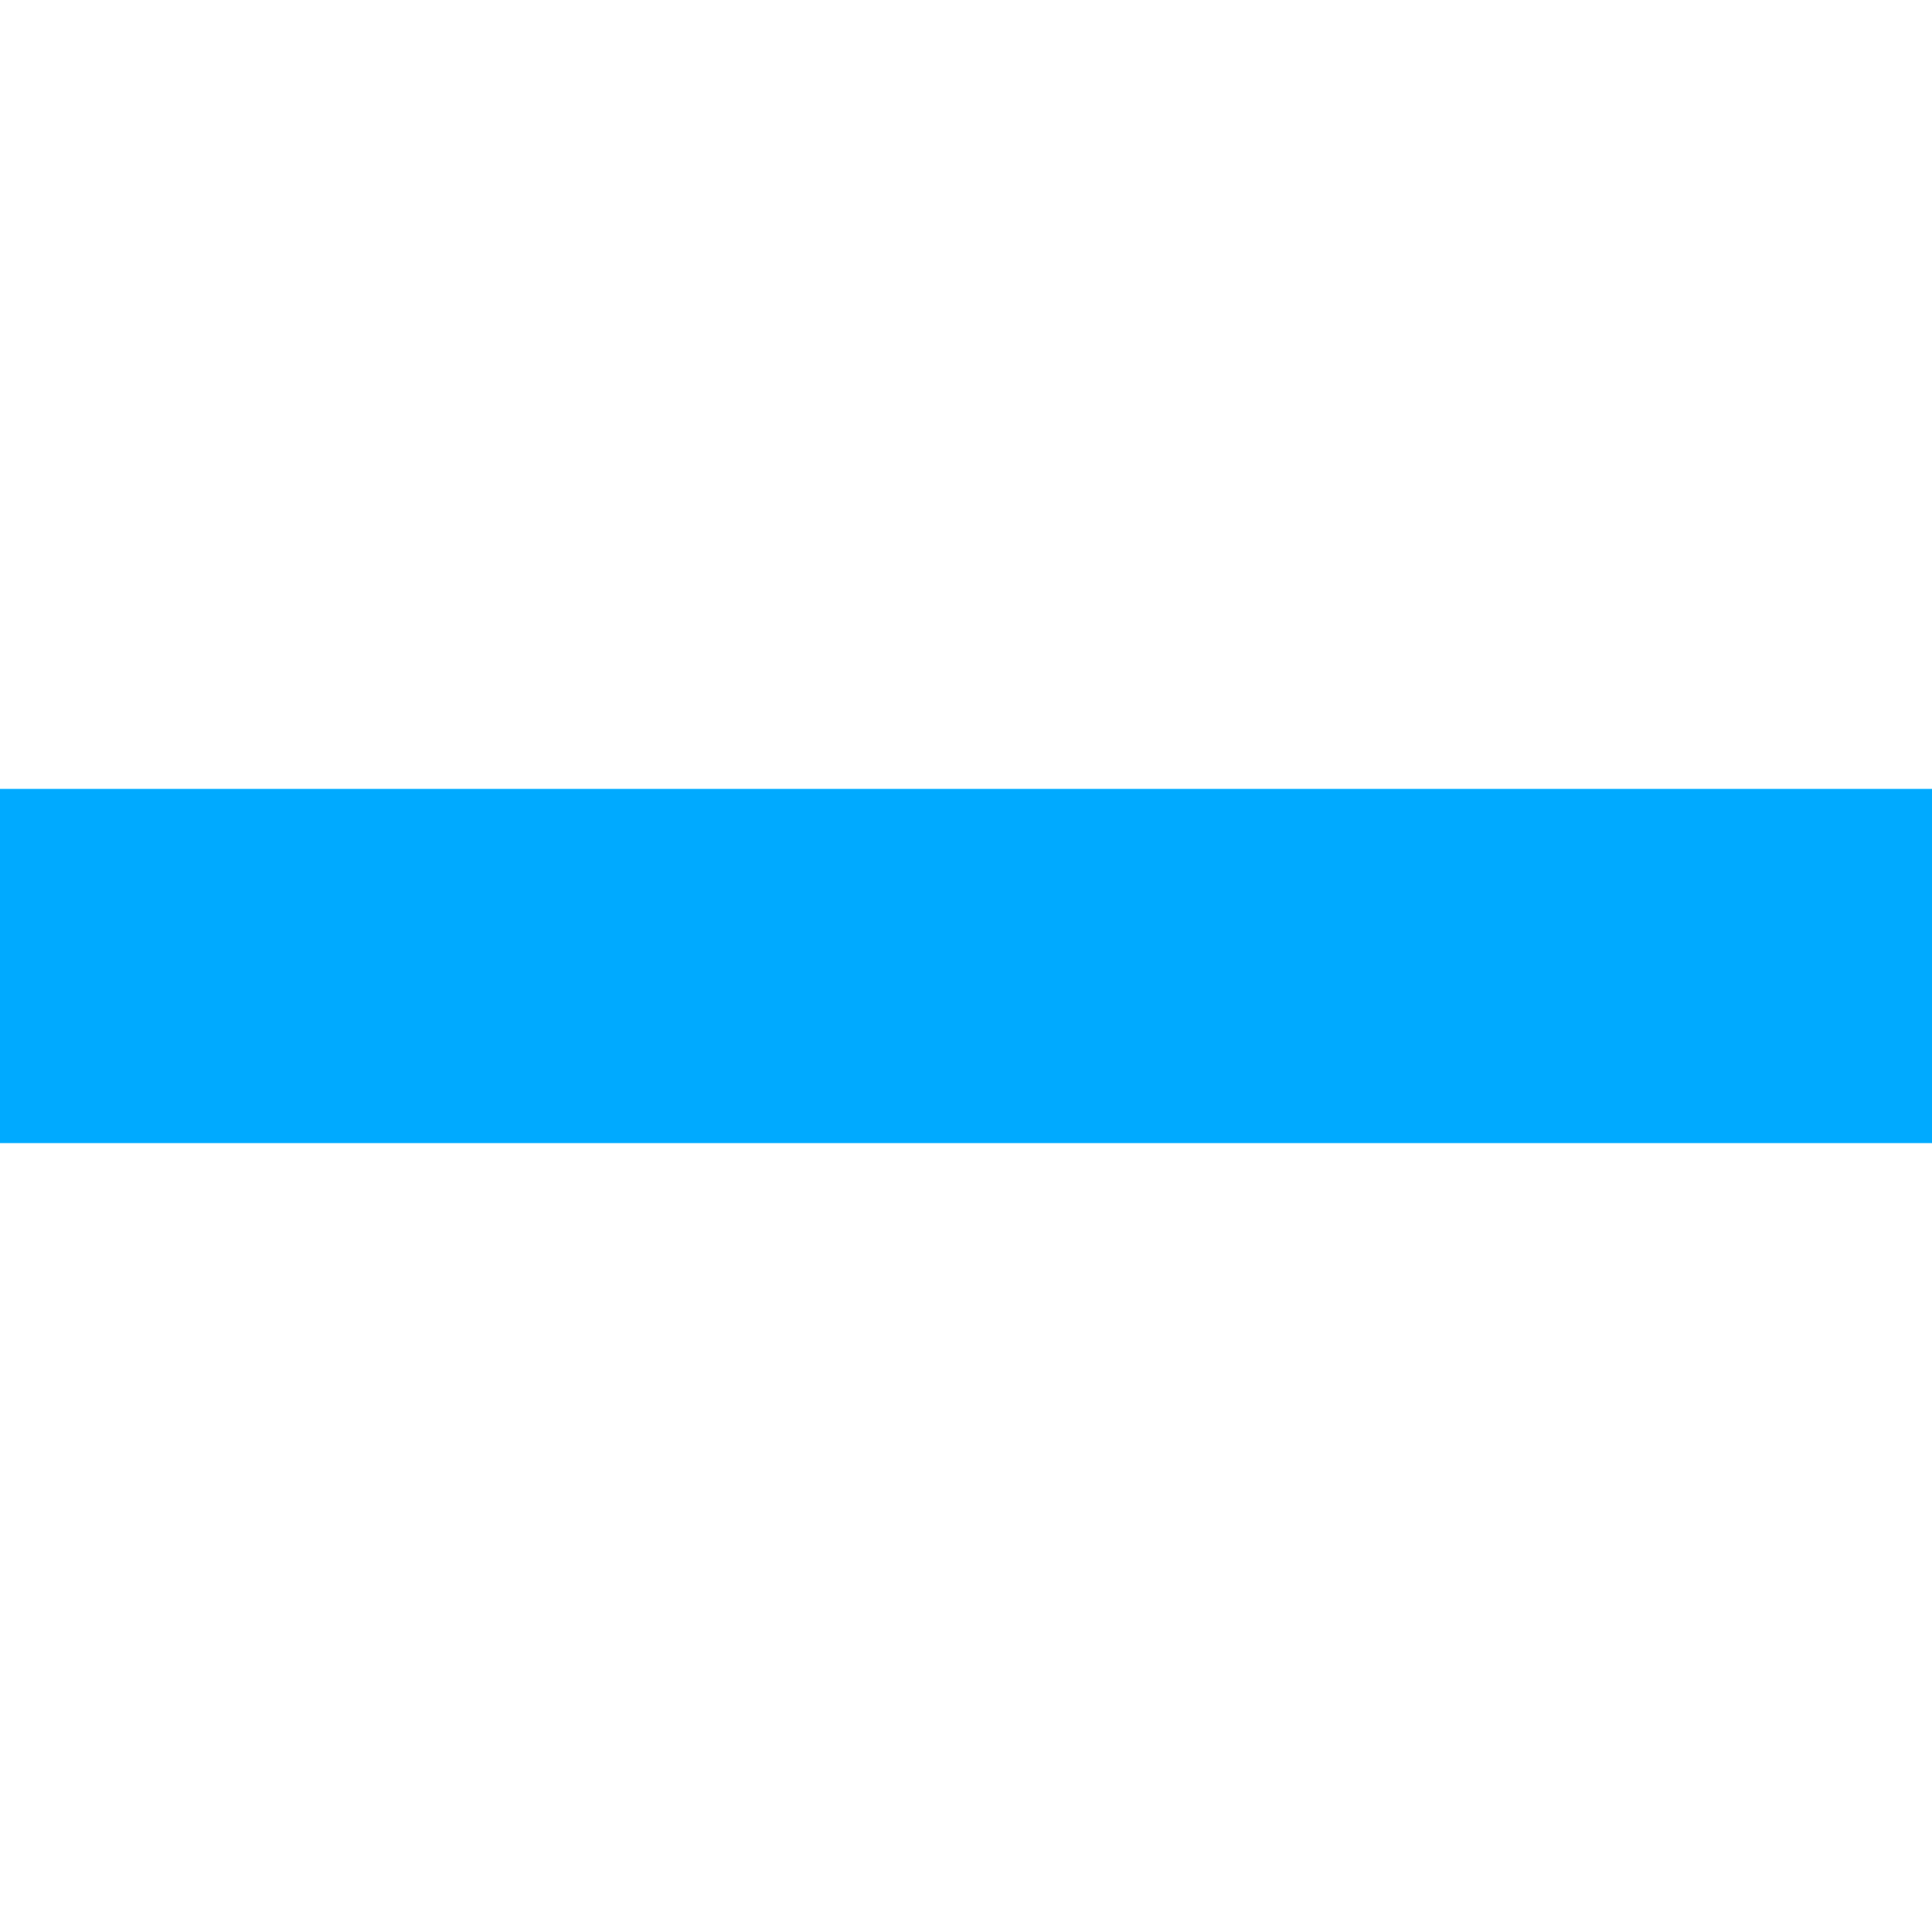 Blue rectangle png. File steady svg wikimedia